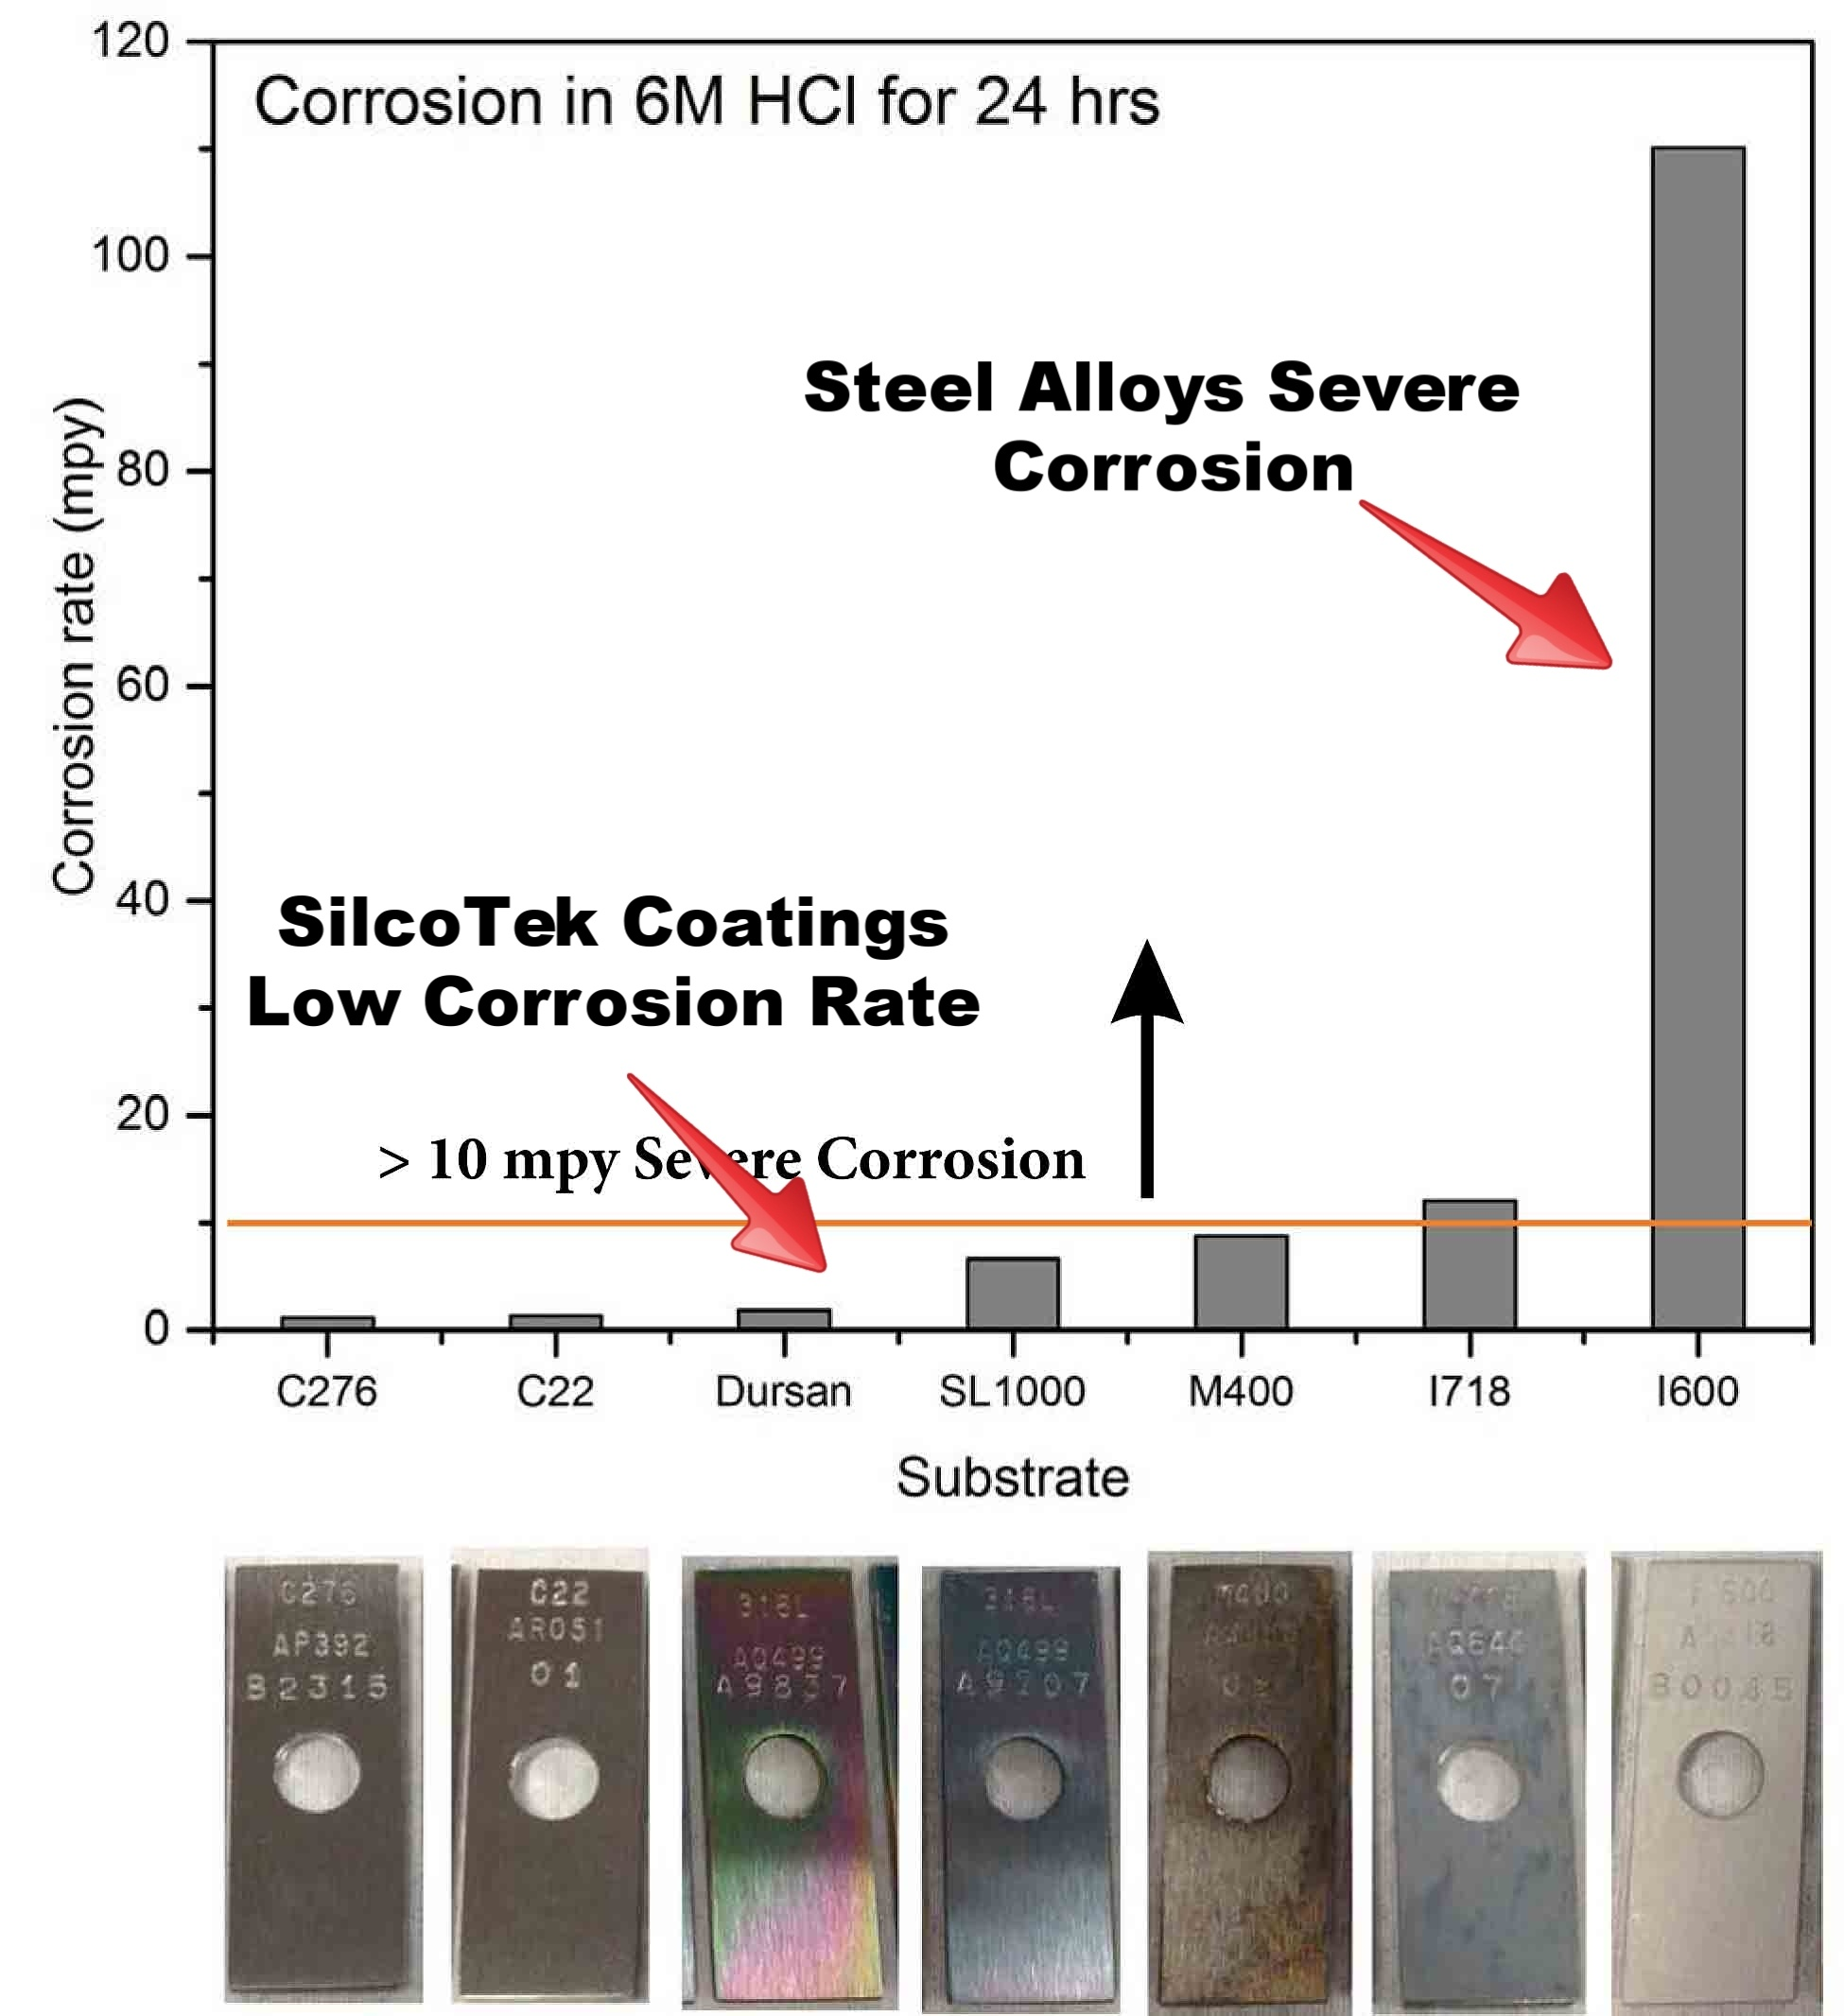 Alloy_HCL_Corrosion_Comparison_2_10_26_15-158824-edited